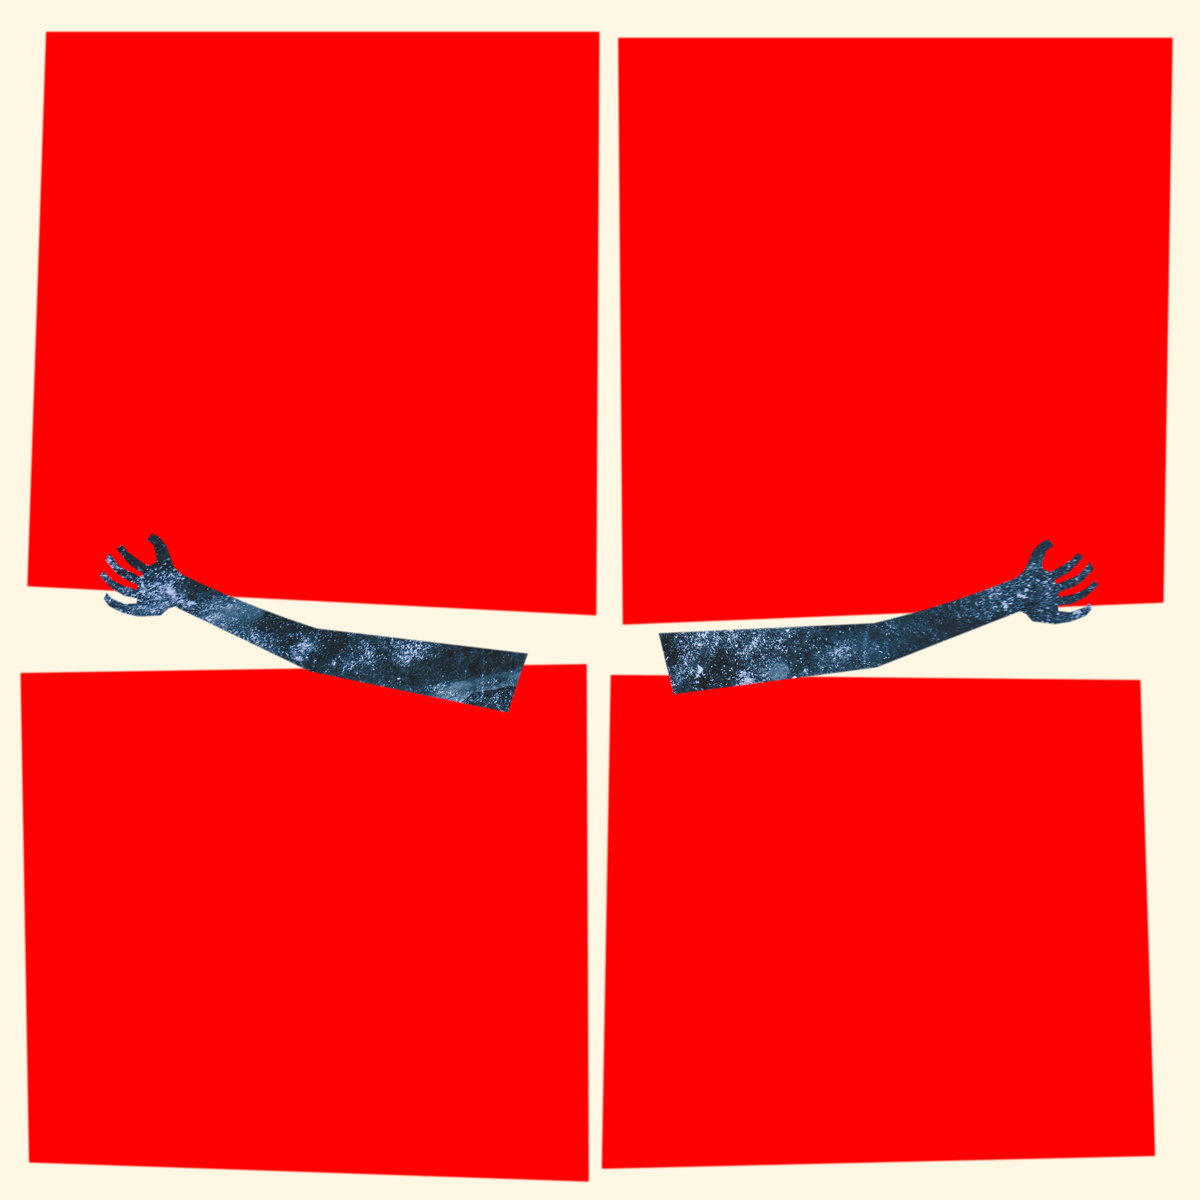 red squares and arms in the shape of a crucifix